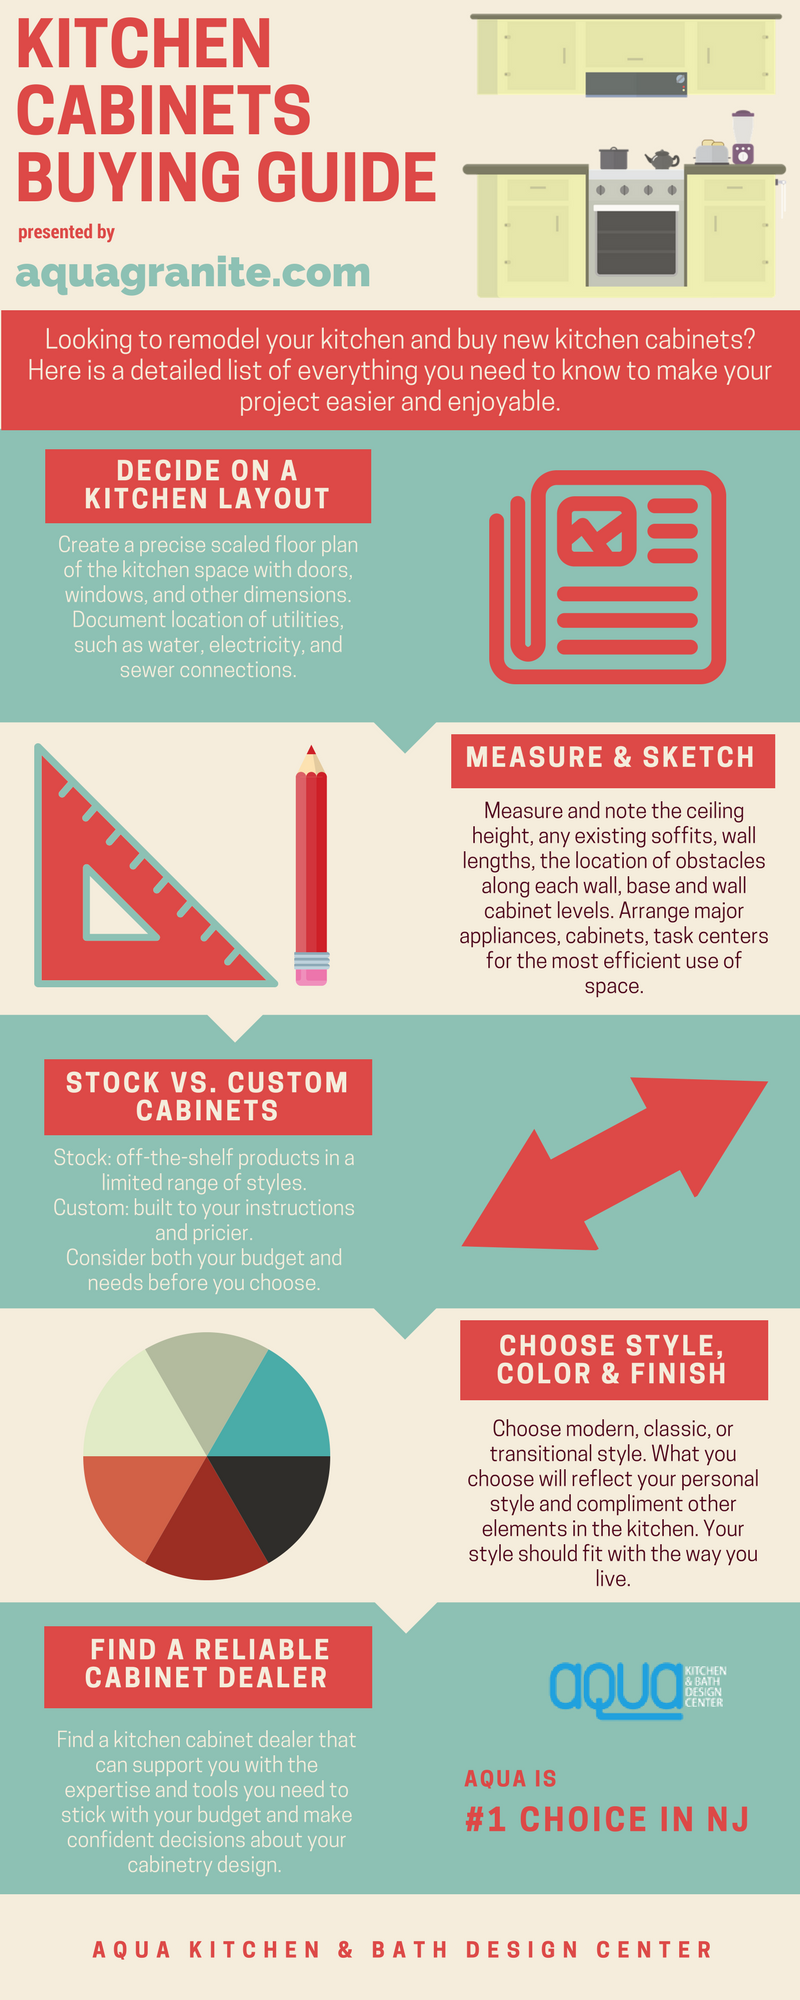 Kitchen Cabinets NJ Buying Guide Infographic